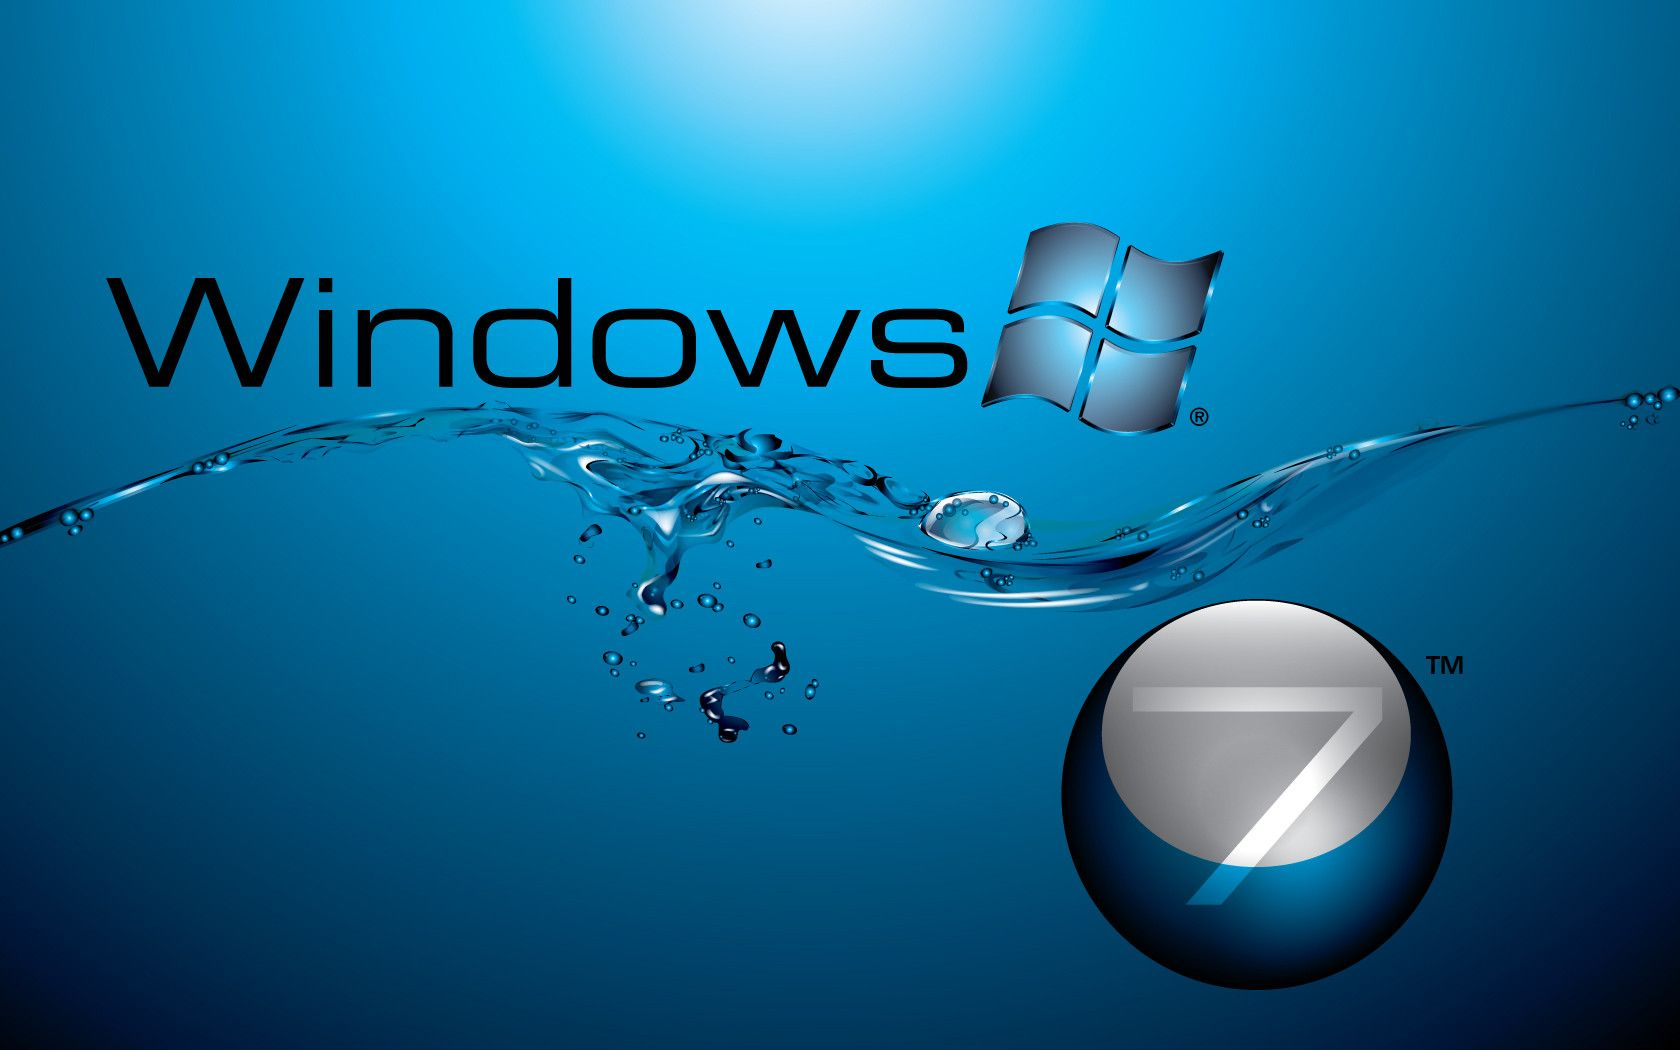 Windows 7 Free Wallpapers HD